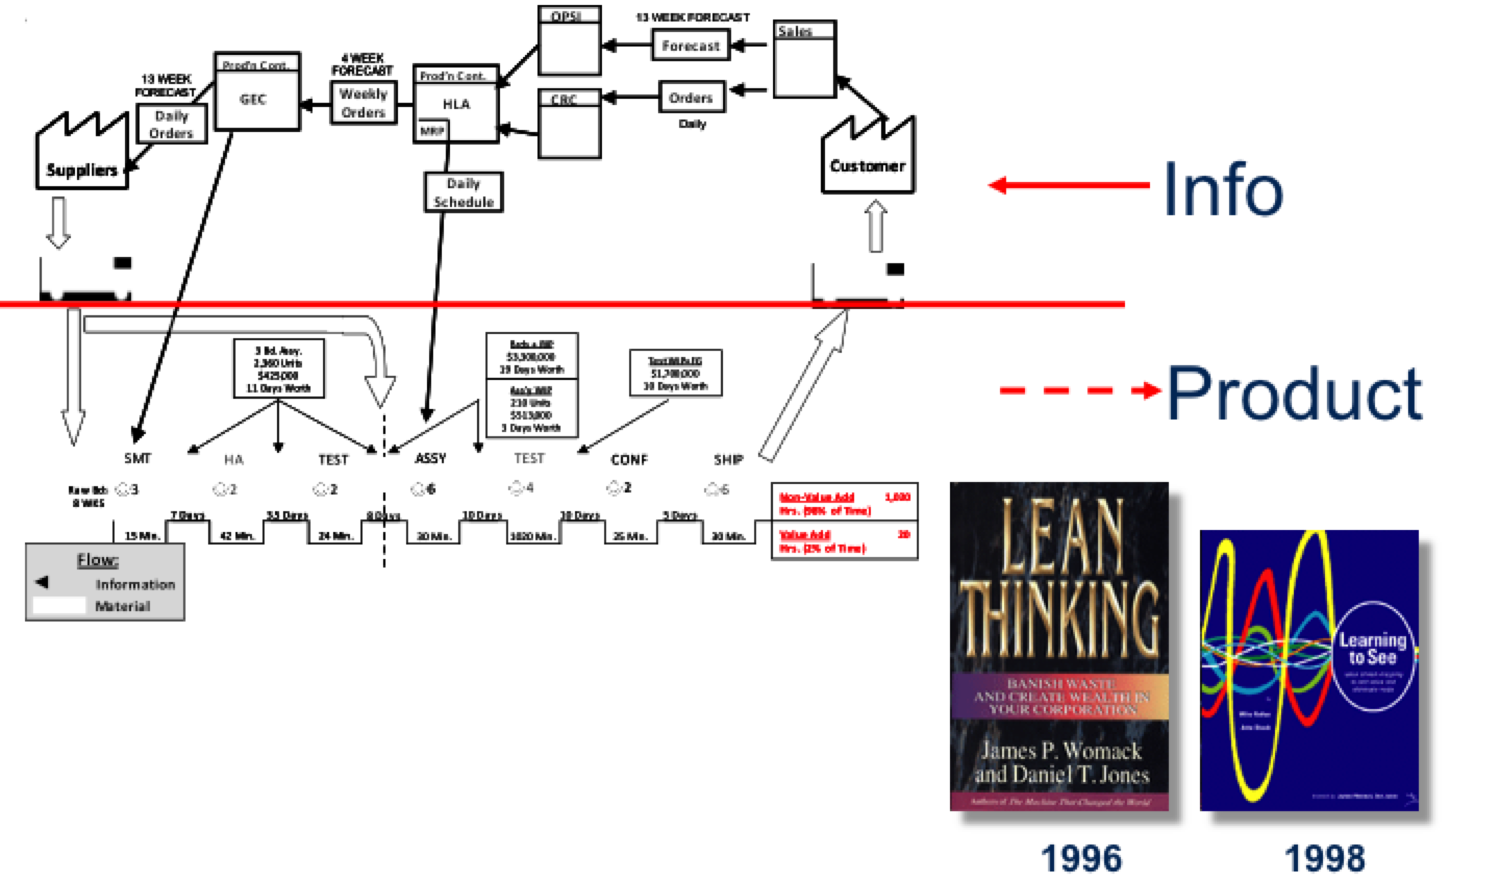 value stream in lean manufacturing How to study your production flow see what's possible by visualizing your entire value stream a value stream map is a tool to study a production flow in the implementation of lean manufacturing.